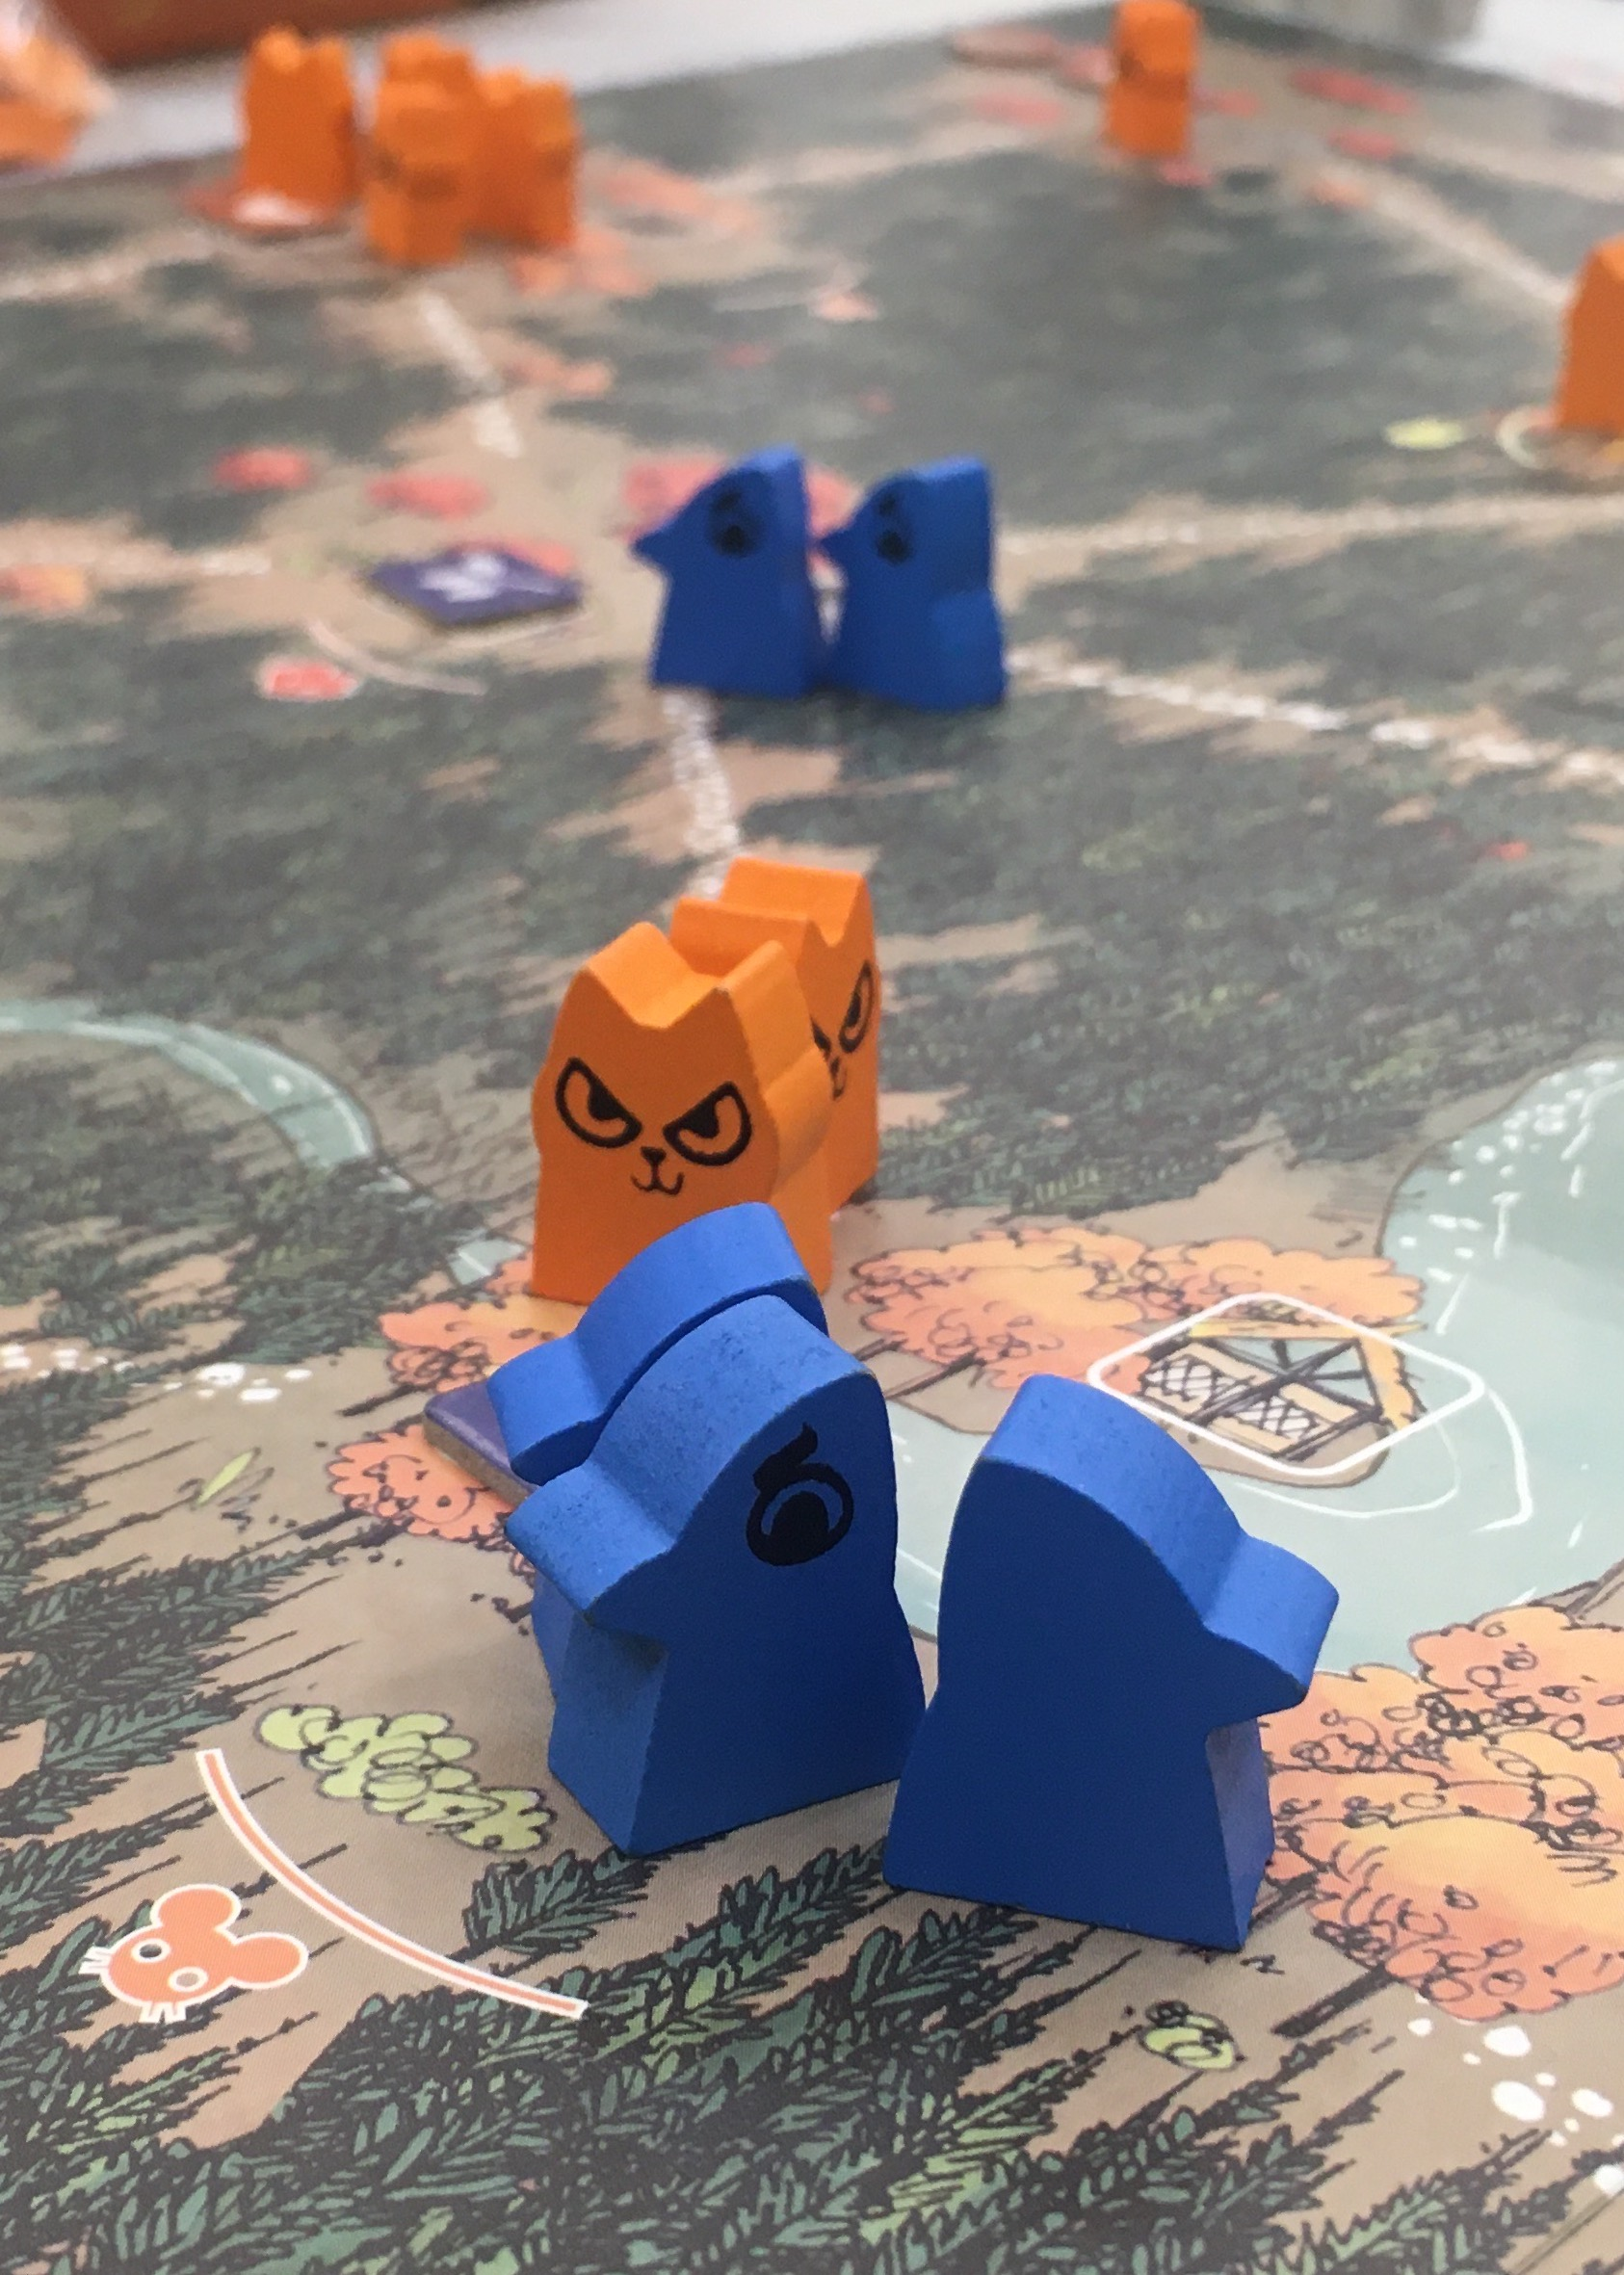 Photograph of a game board with orange and blue pieces on it. The orange pieces have smirking cat faces painted on them.